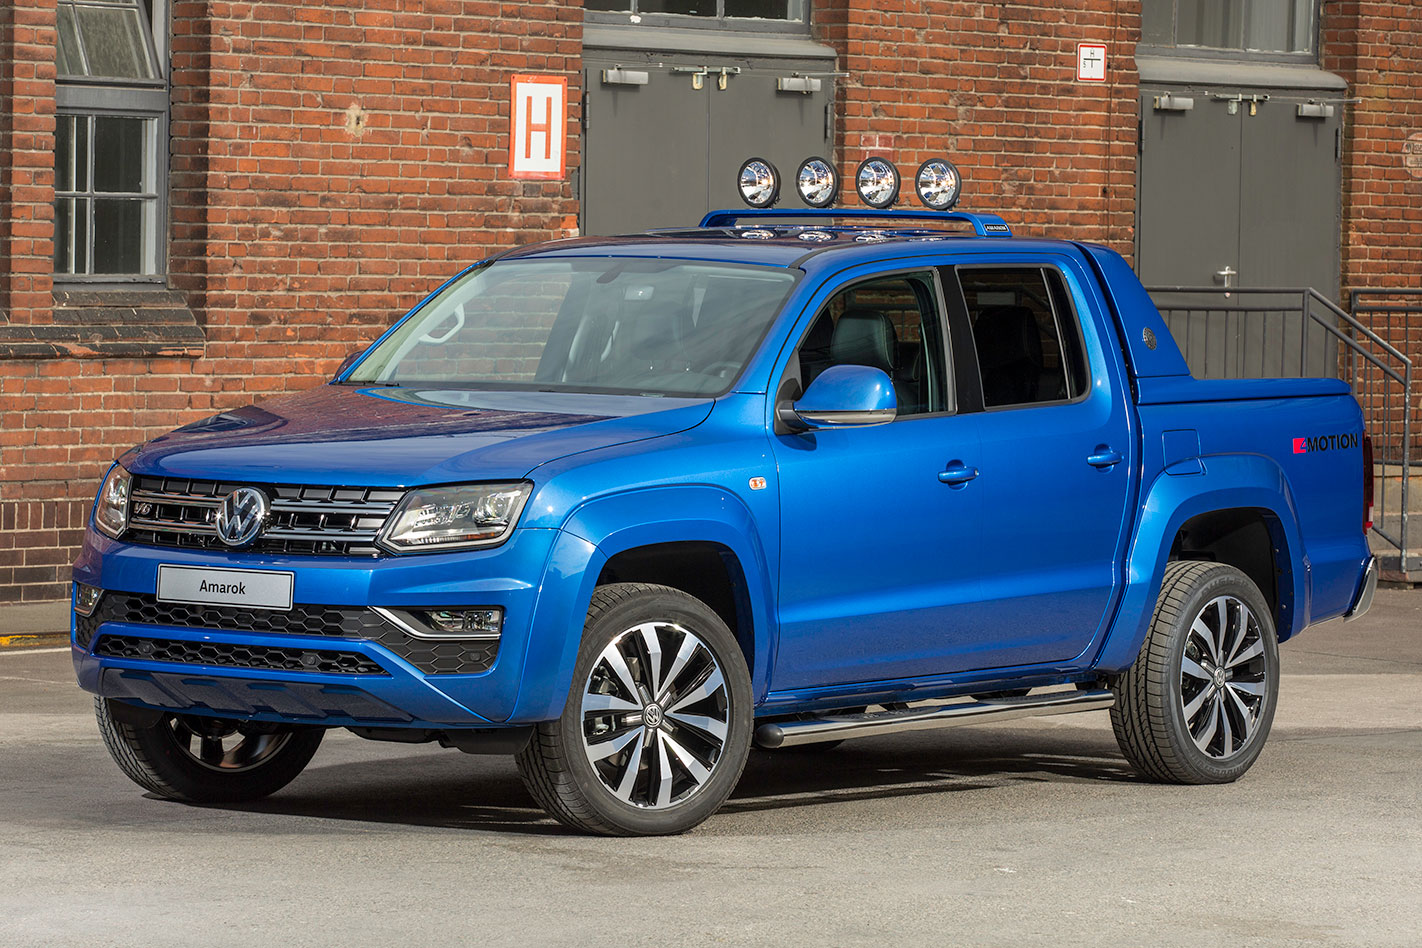 2016 volkswagen amarok aventura review wheels. Black Bedroom Furniture Sets. Home Design Ideas